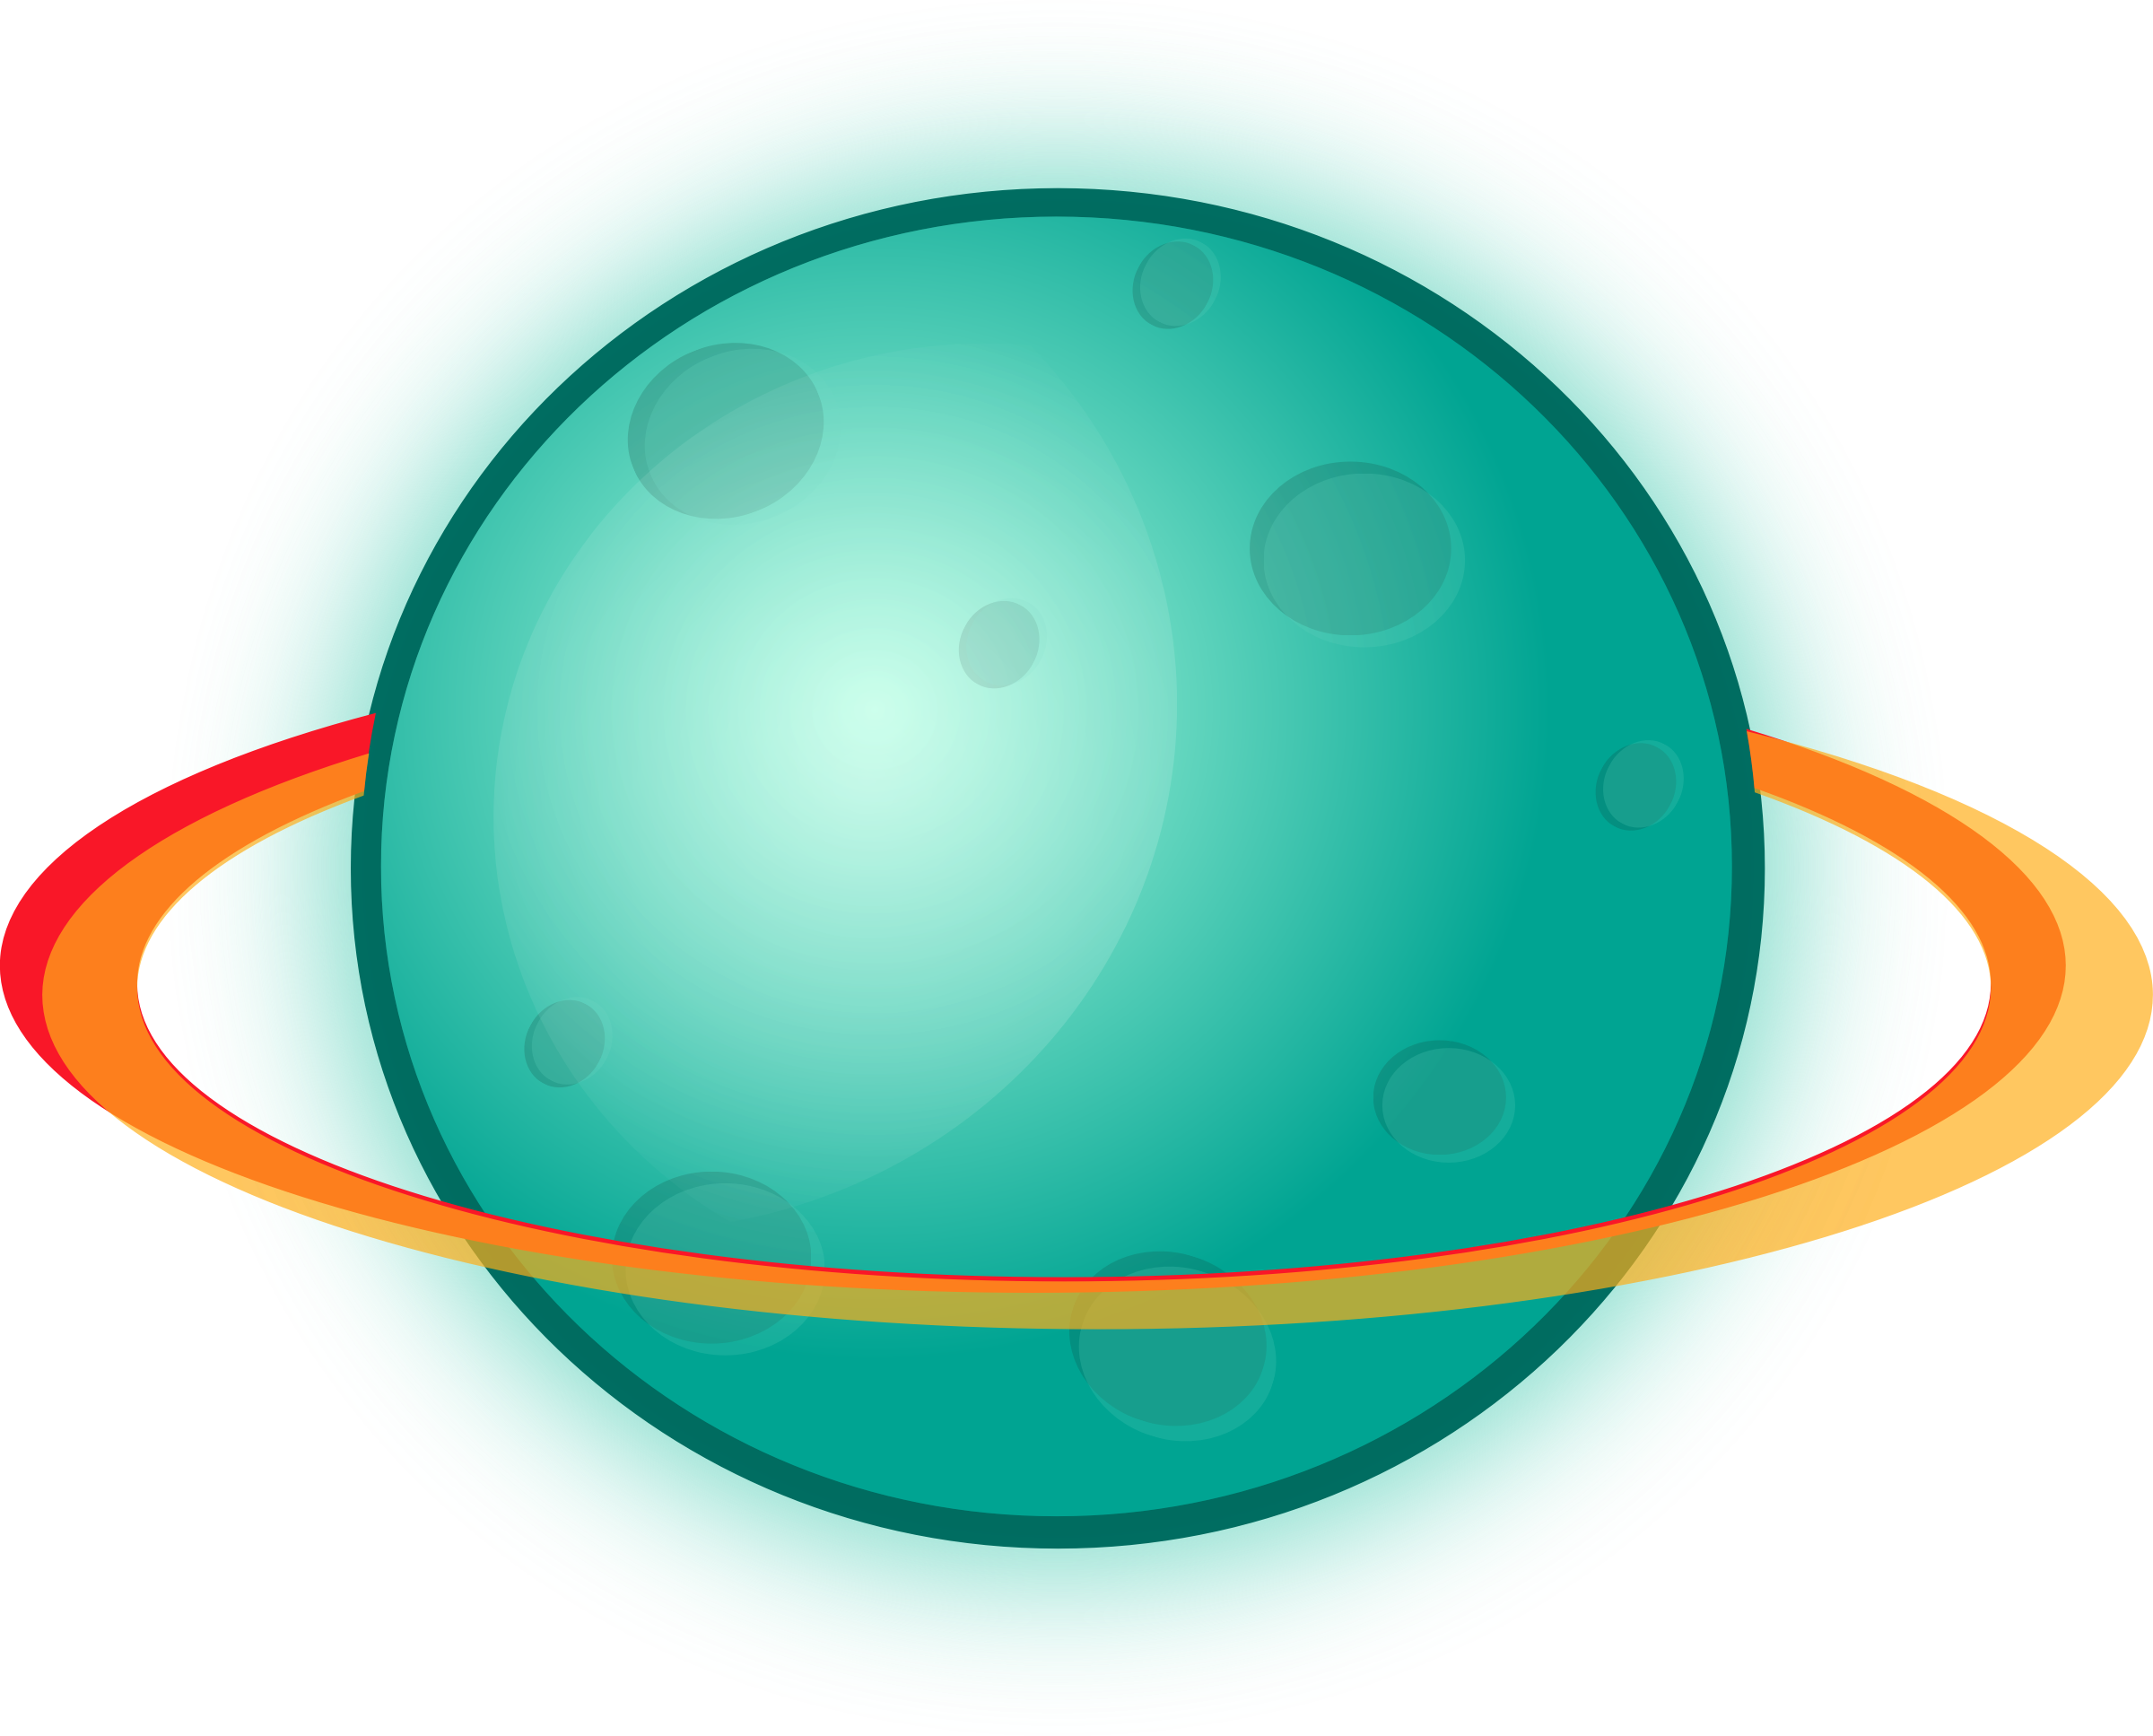 Planet With Rings Planet Ring Earth Day Clip Art Star Clipart